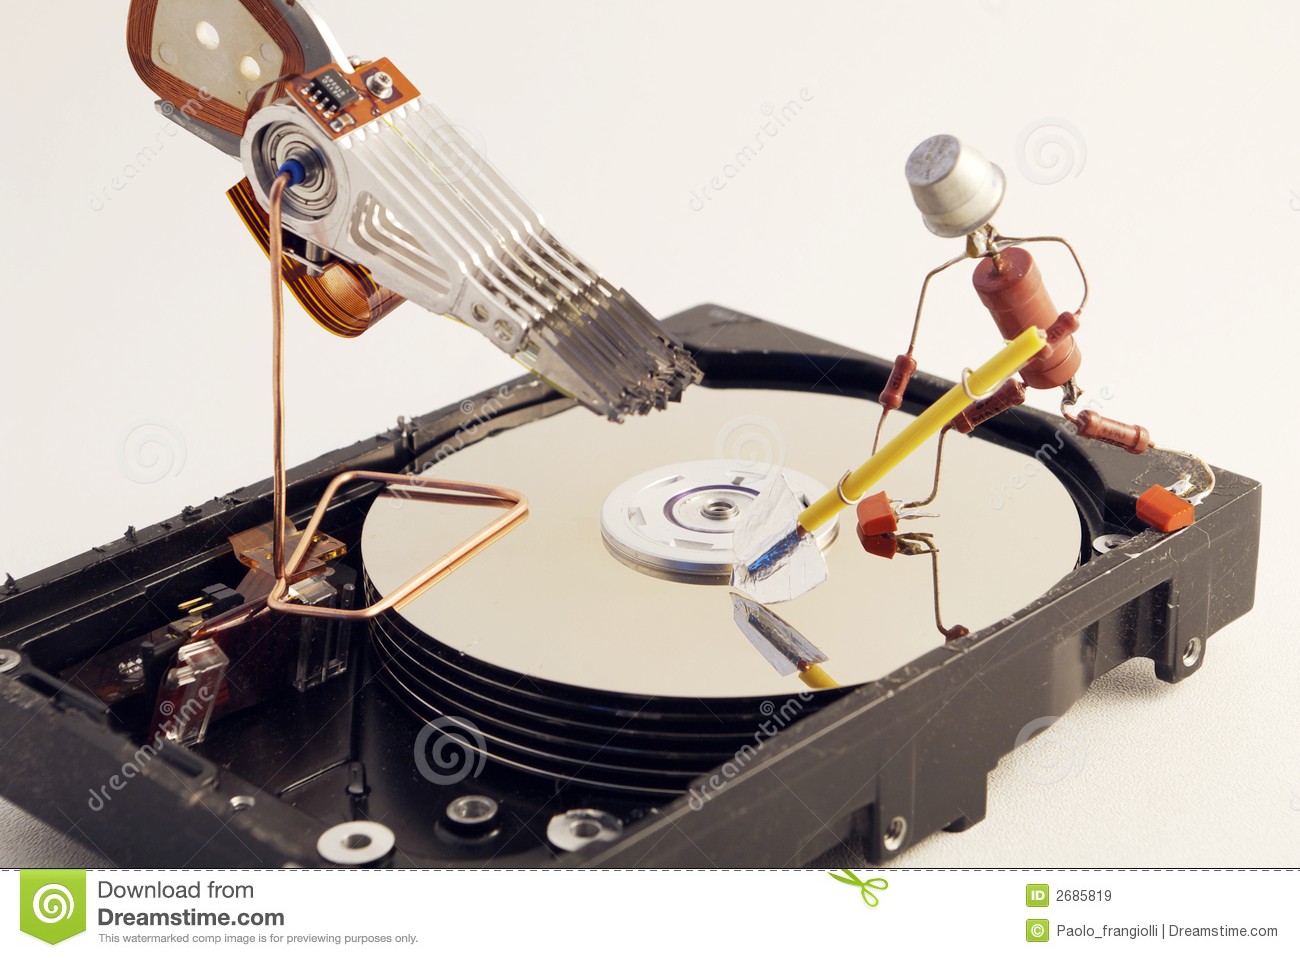 http://www.dreamstime.com/royalty-free-stock-images-hdd-repair-image2685819